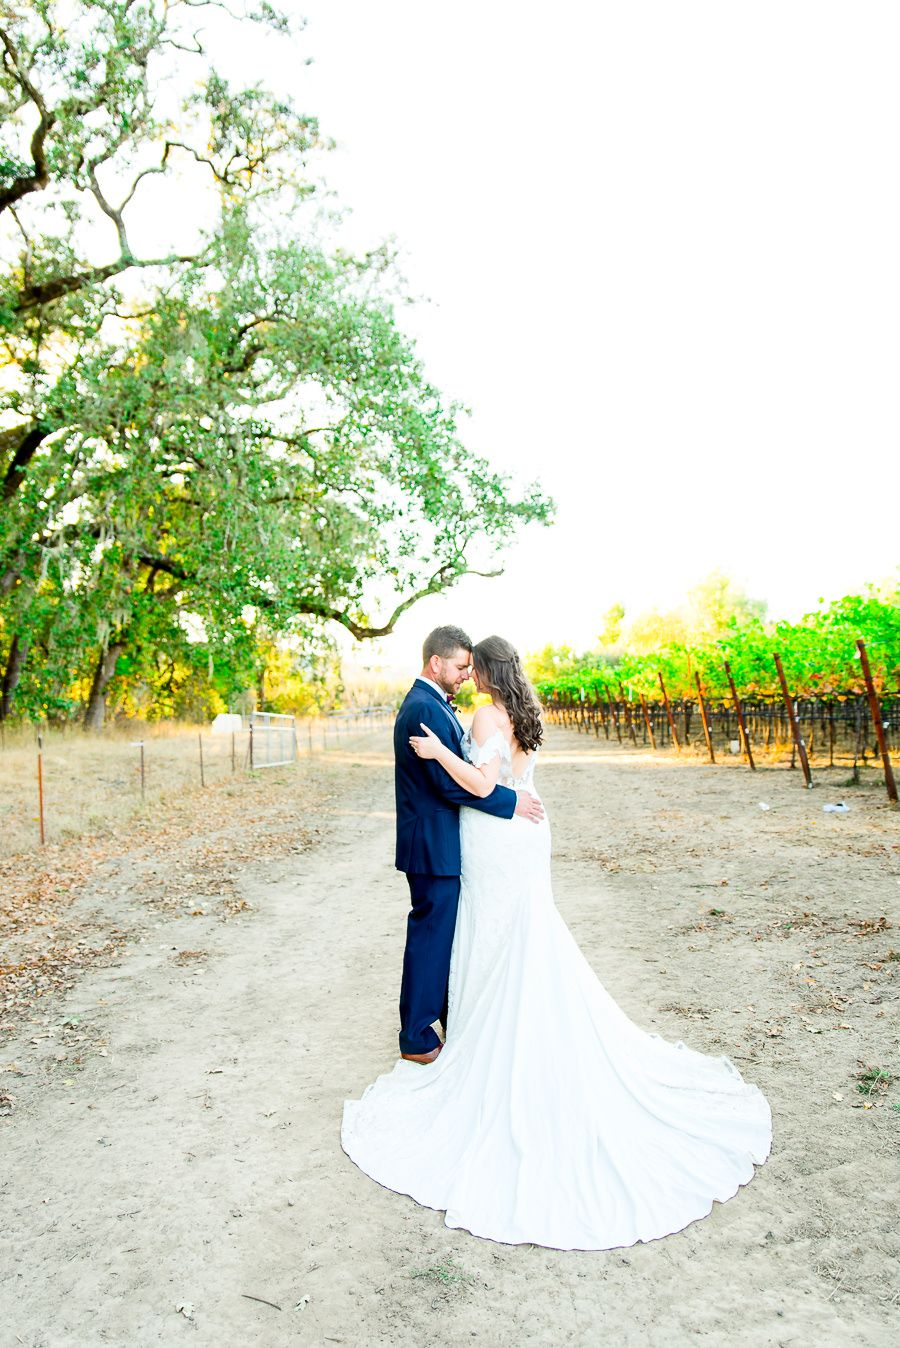 groom in navy suit and bride in dress with long train stand together in the vineyard at Pennyroyal Farm